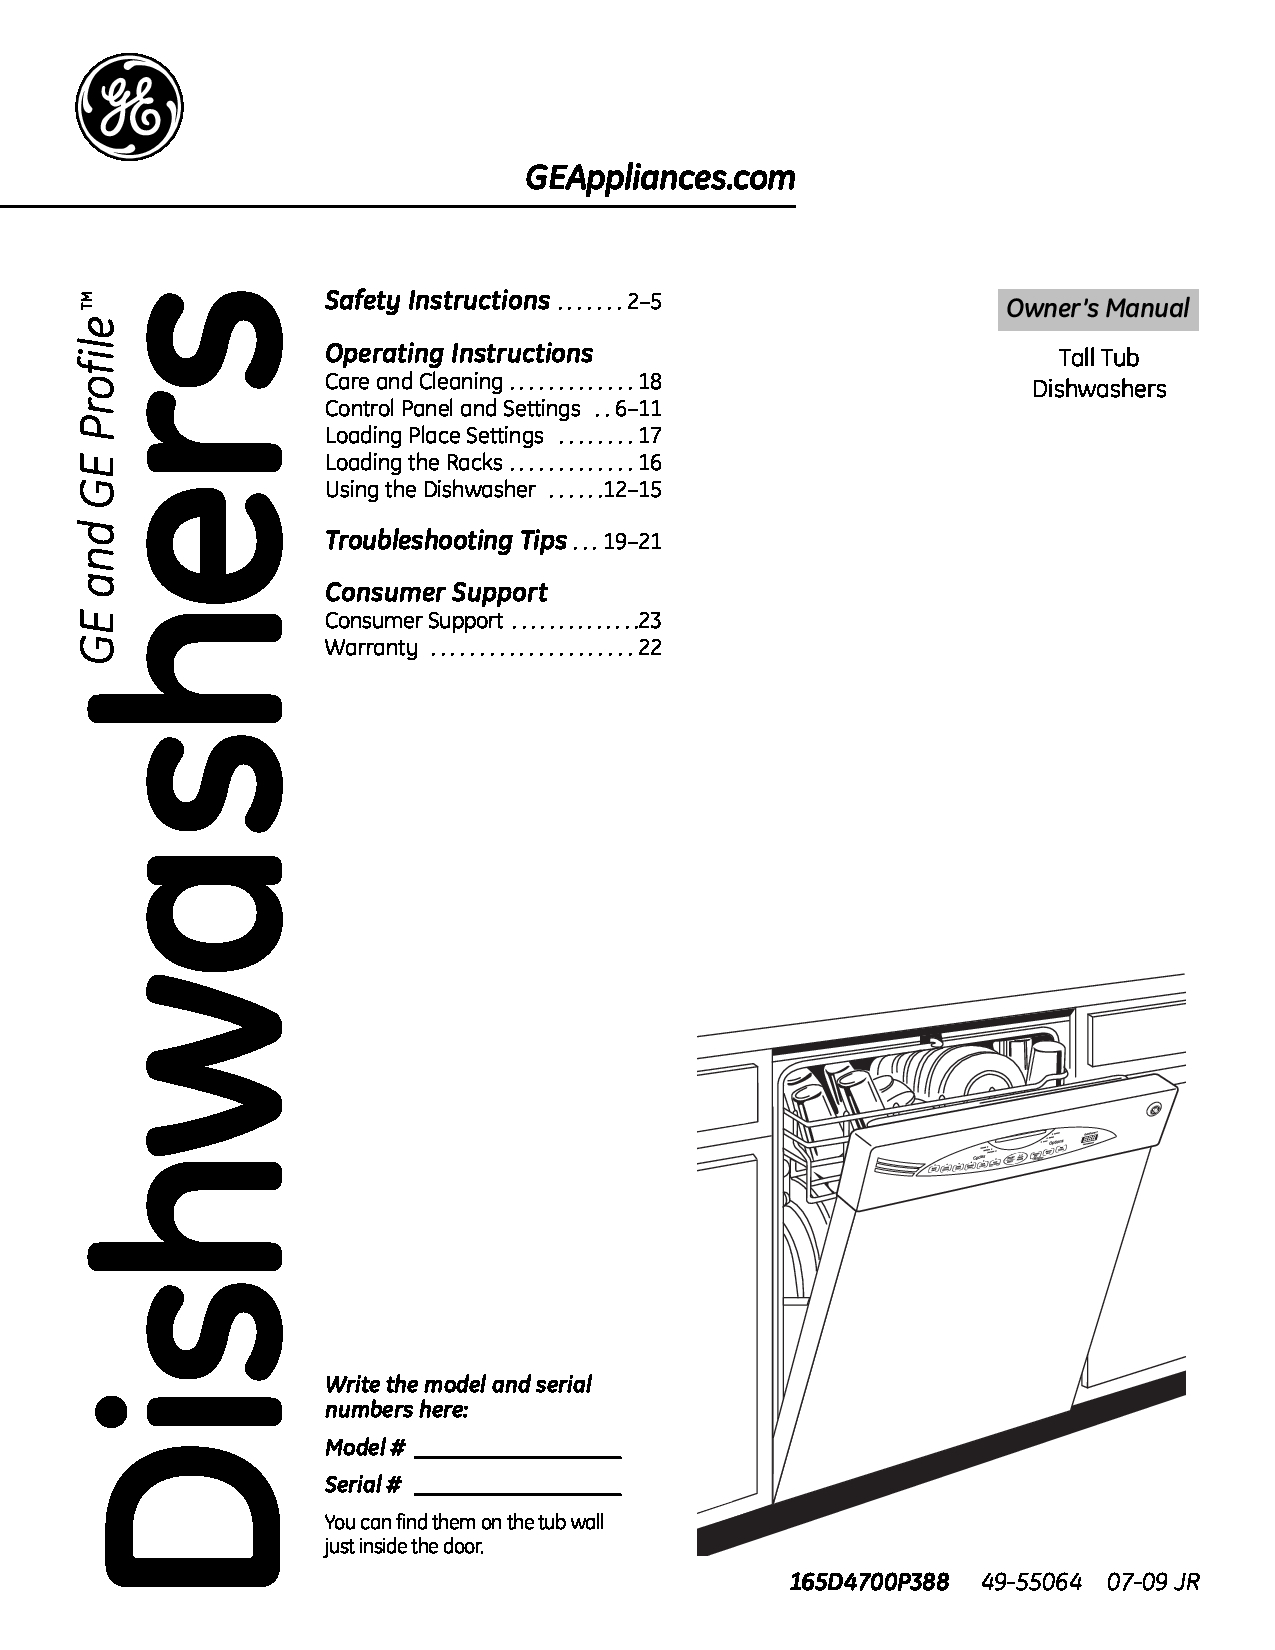 GE Dishwasher manuals